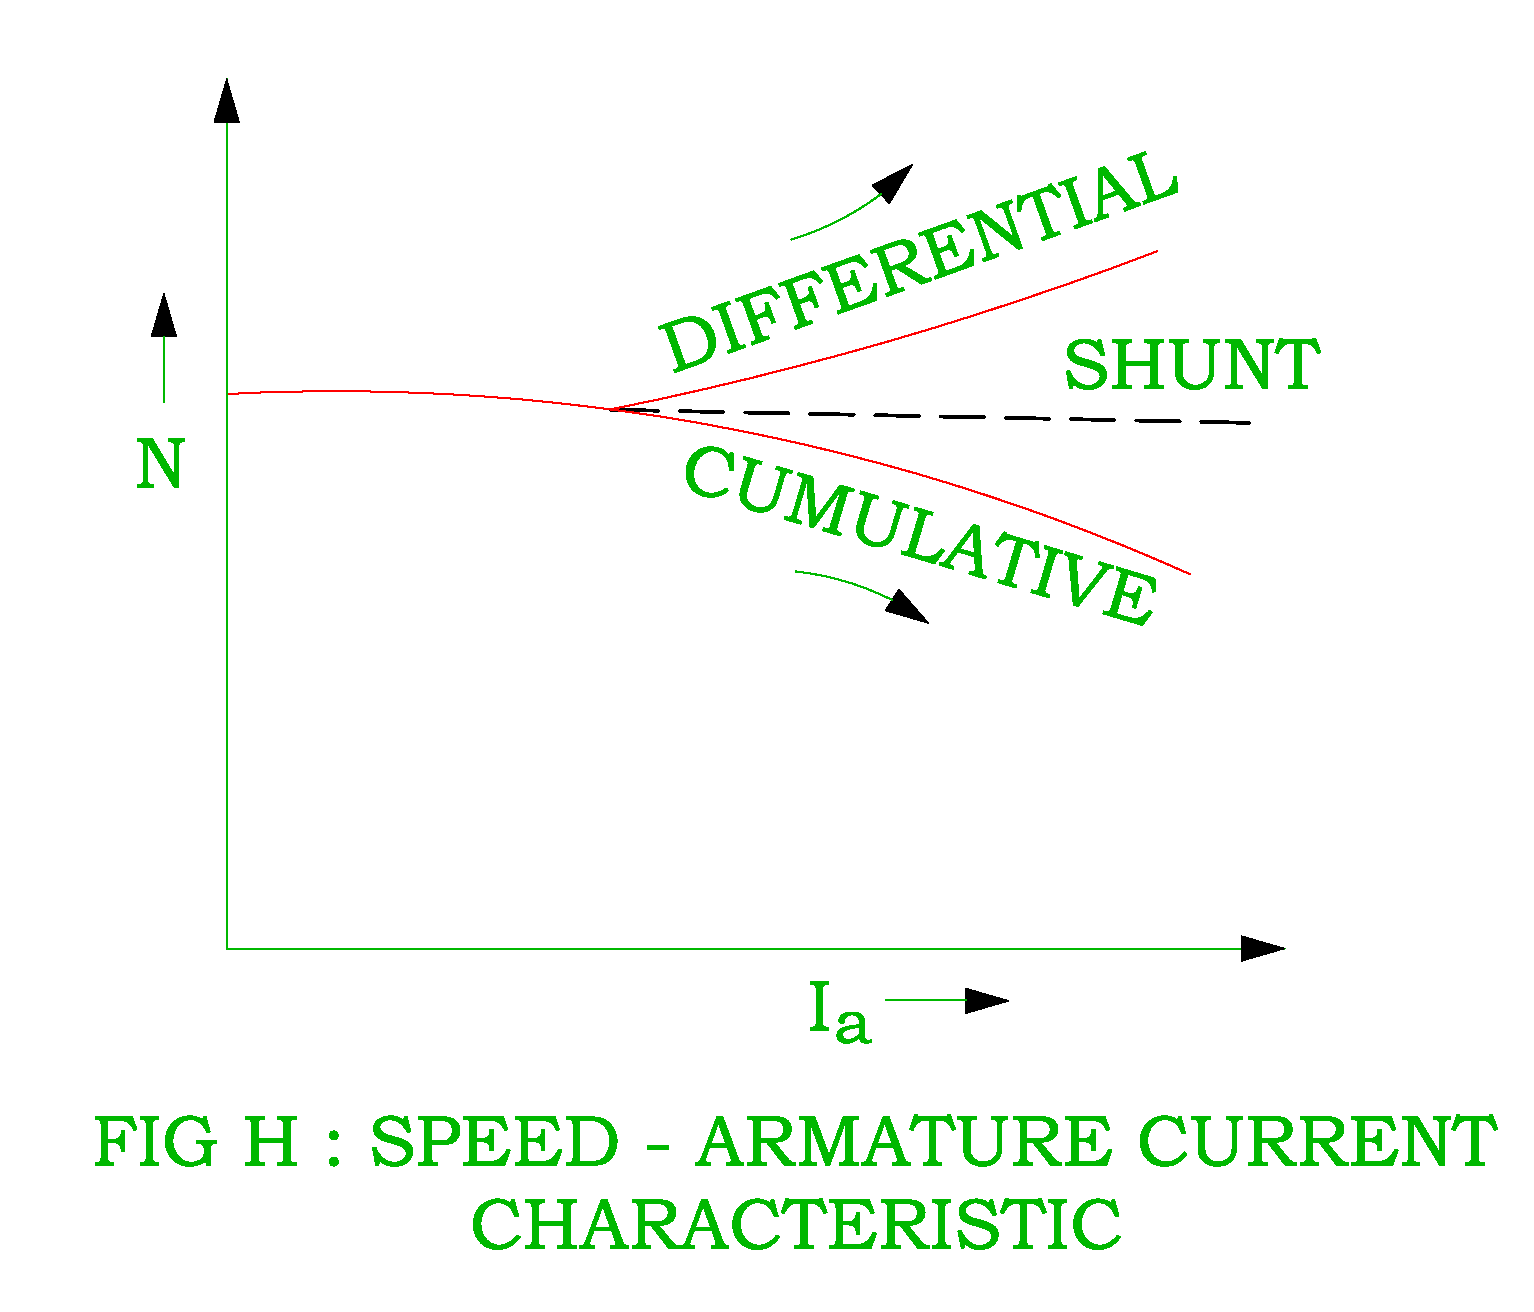 speed armature current characteristic of dc cumulative compound differential compound motor [ 1534 x 1312 Pixel ]